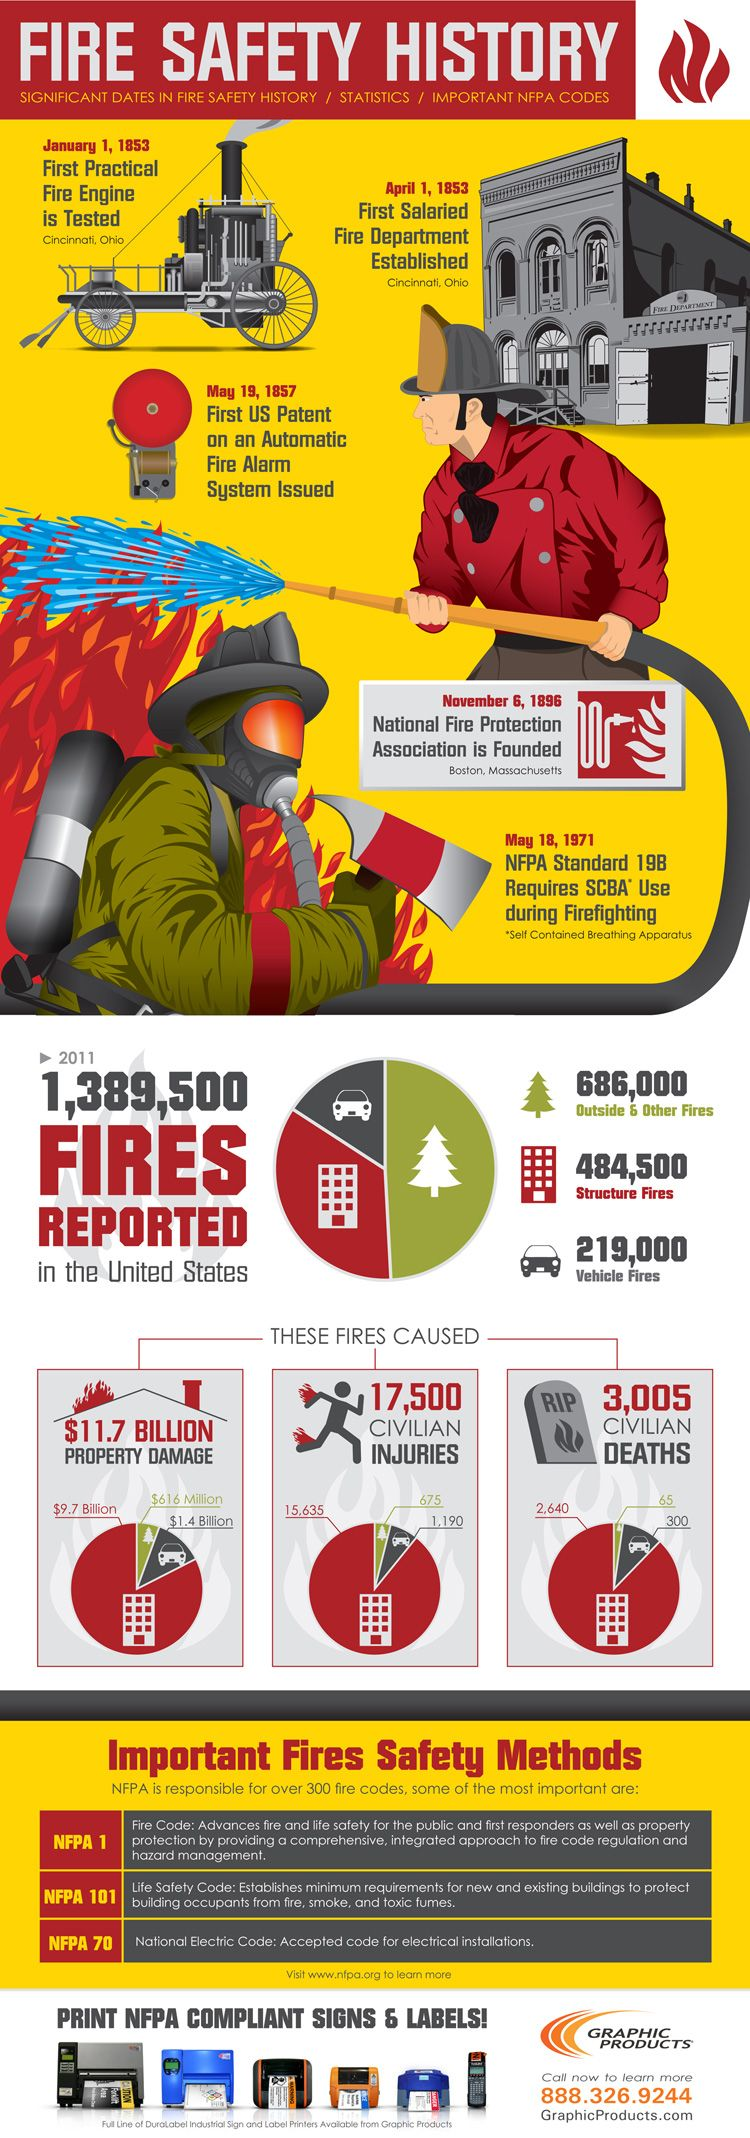 Turn up the heat on safety. Our Fire History infographic